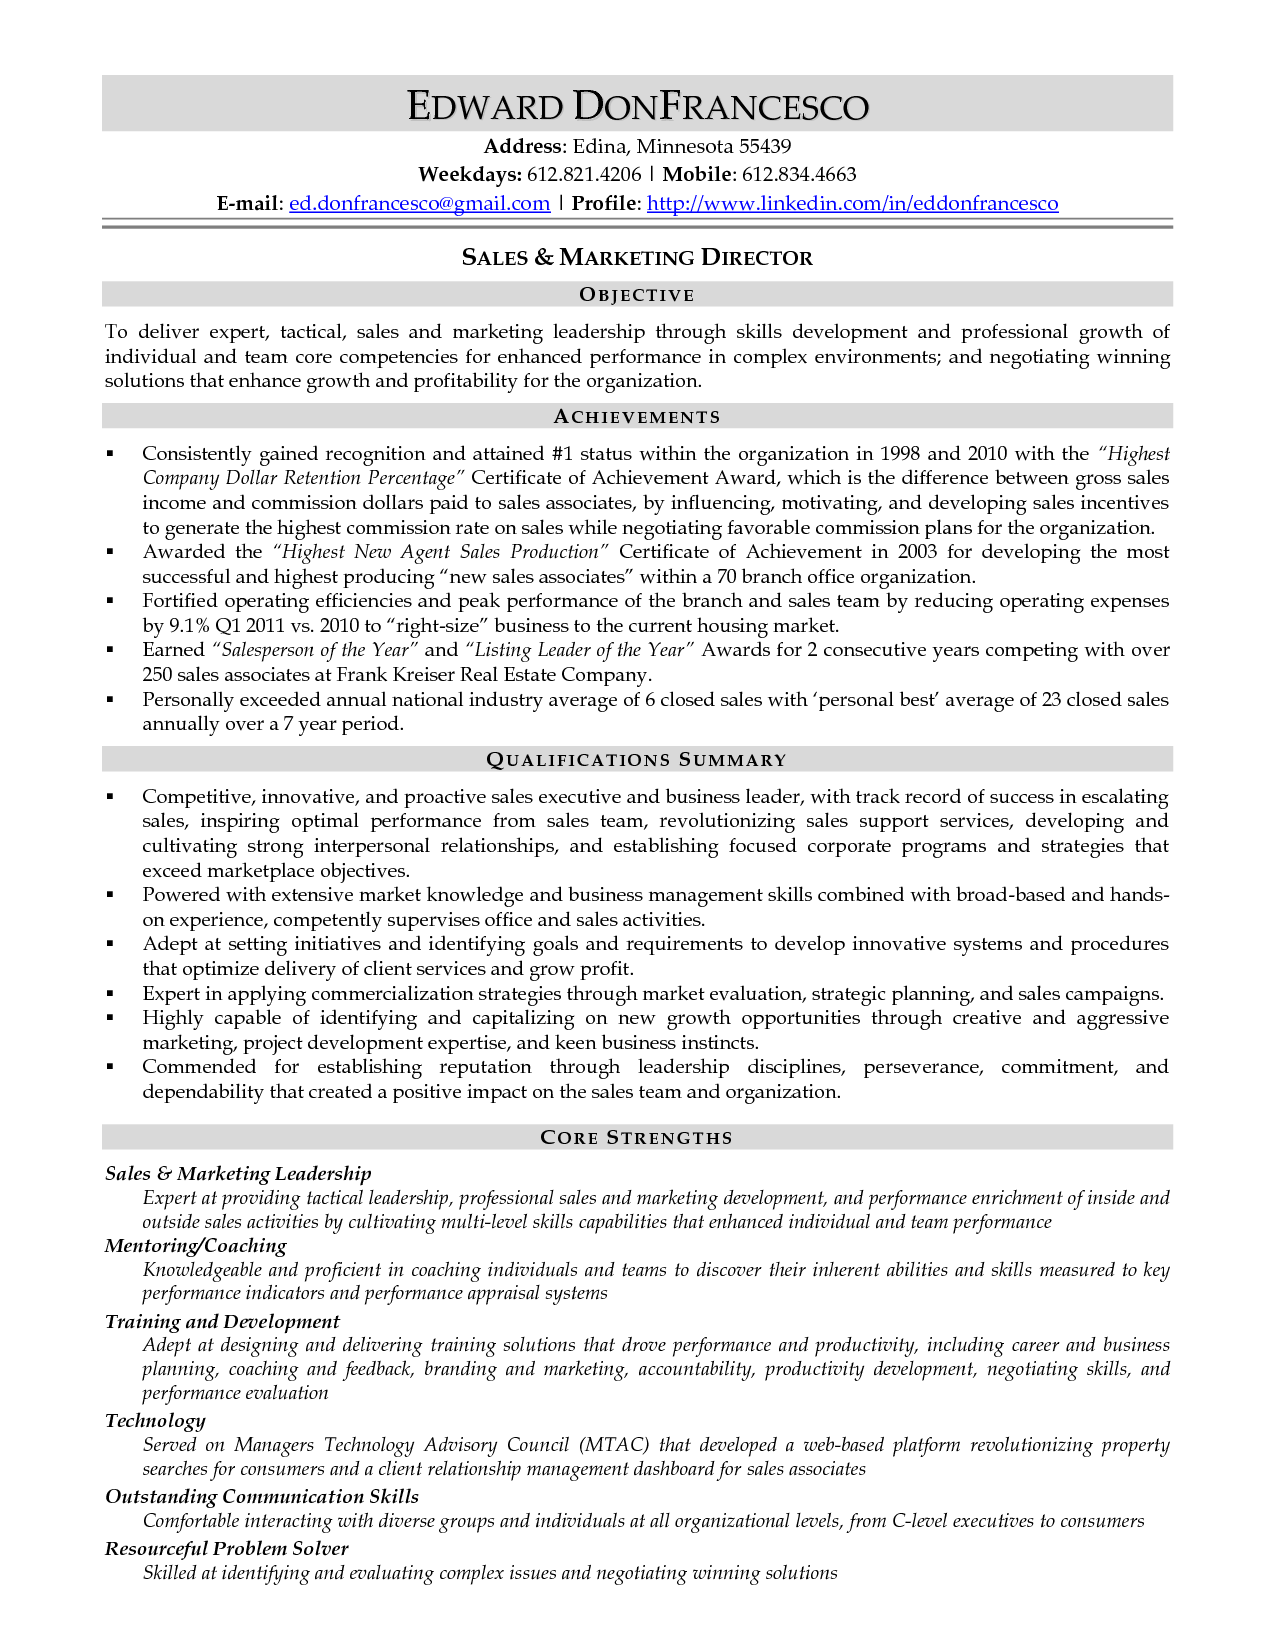 Core Competencies Examples For Resume Resume Example Core Competencies Examples For Resume Core